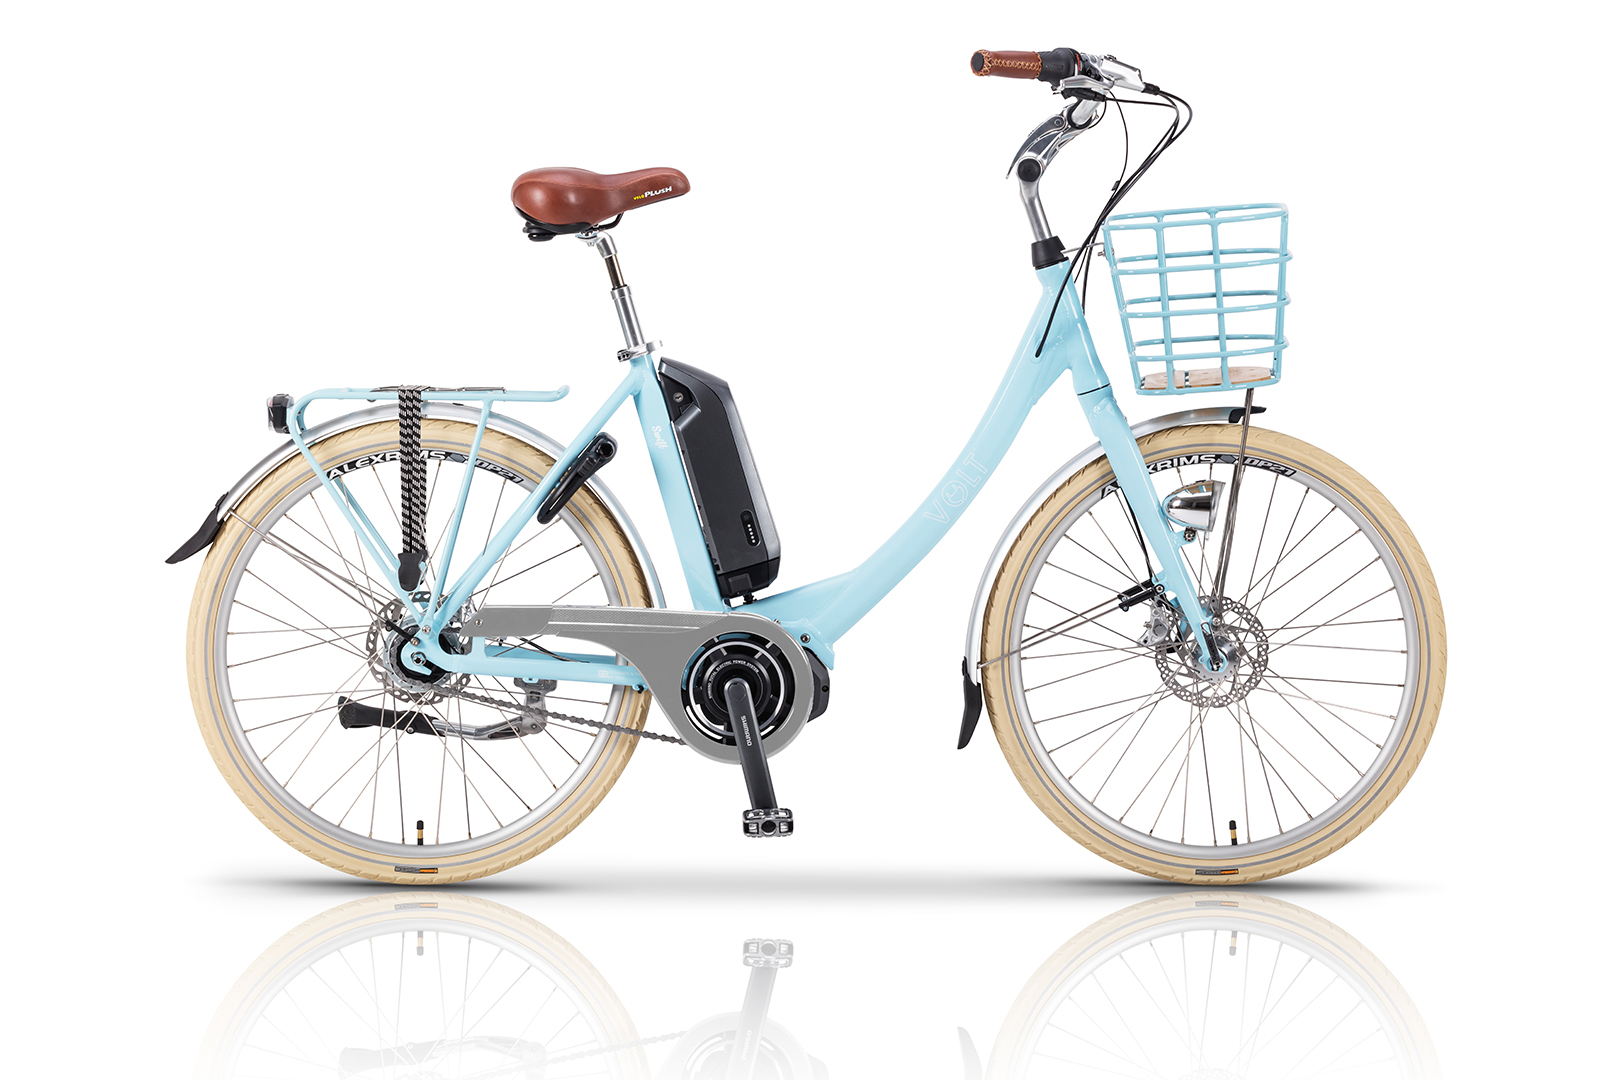 Swift e-bike from VOLT™